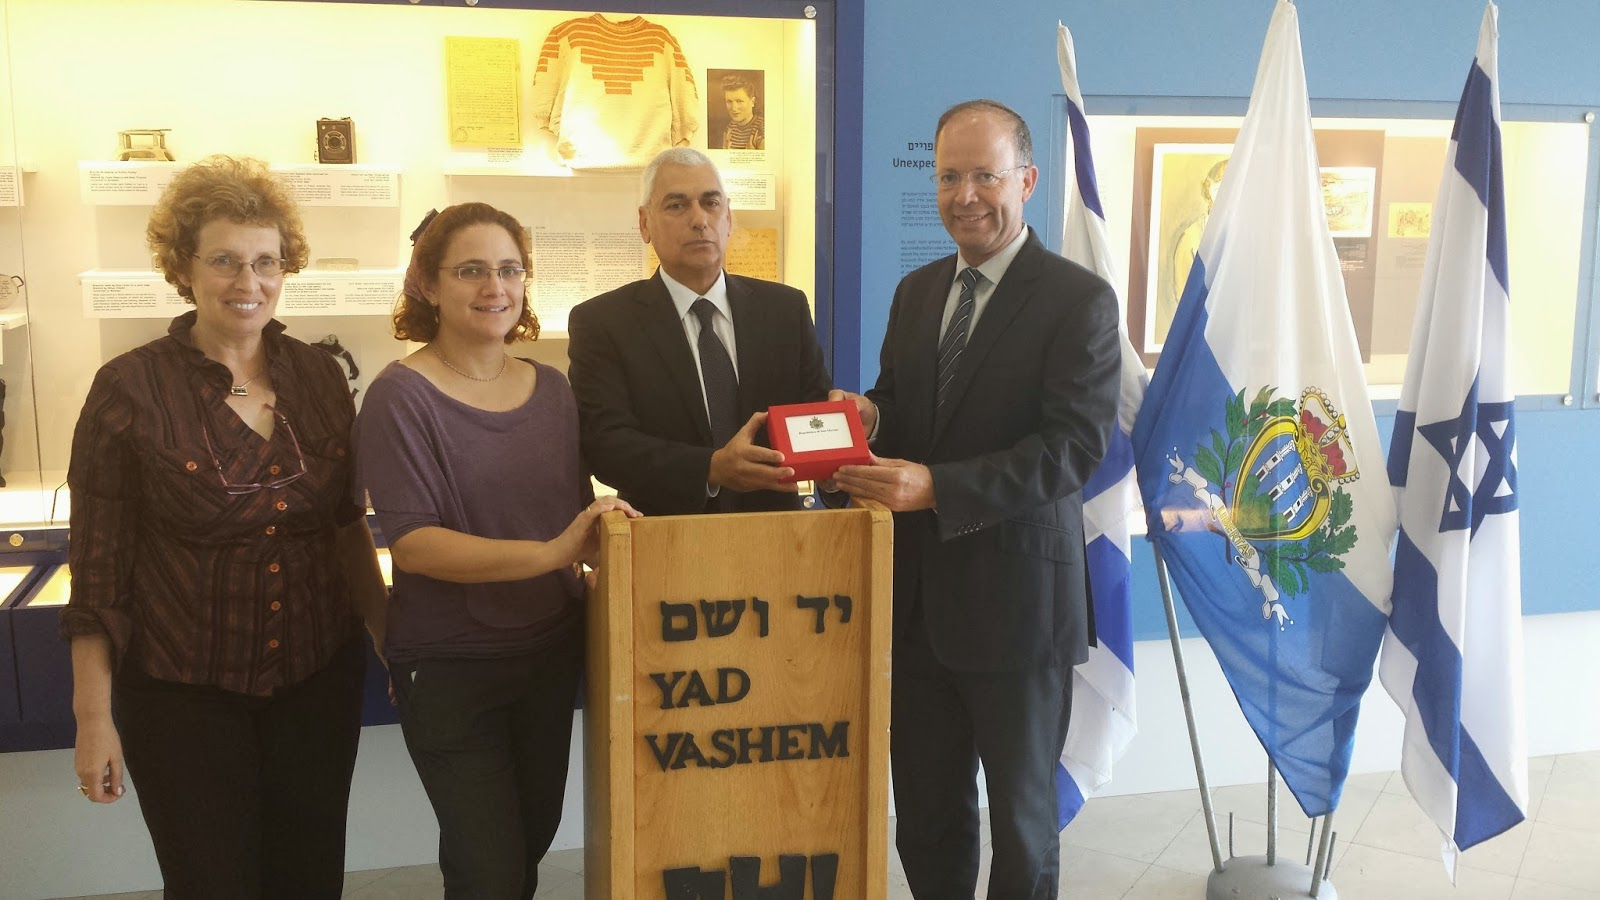 Masha Yonin, Director Archival Acquisition Dept., Yad Vashem Archives, Dr. Anat Kutner, Deputy Director Archival Acquisition Dept., Yad Vashem Archives, San Marino Ambassador at Large H.E. Mr. Yosef Gershon and Dr. Haim Gertner, Director of the Yad Vashe